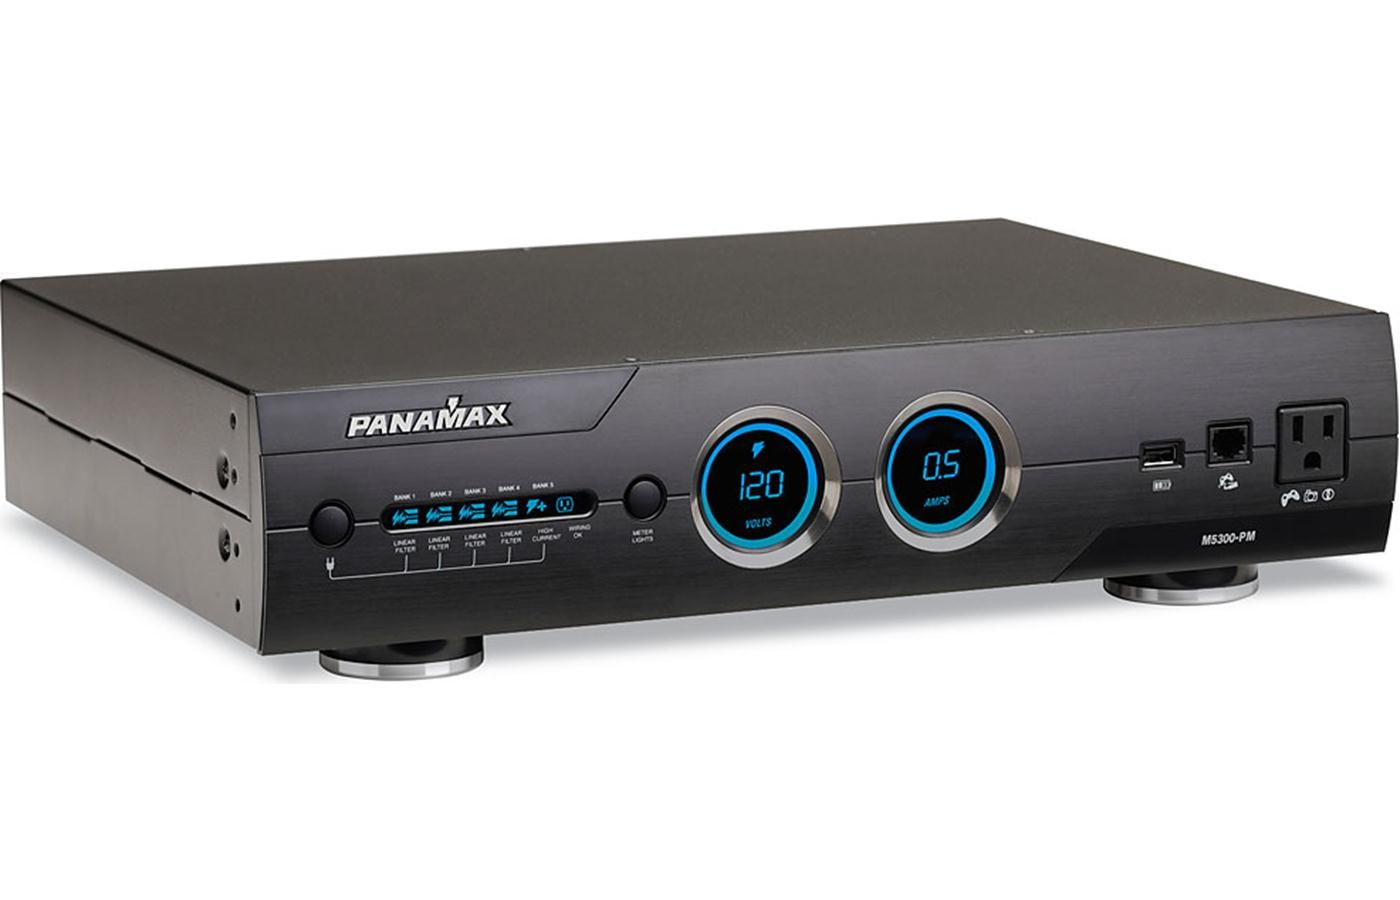 Panamax M5300 Pm Power Line Conditioner And Surge Protector Home Theater Home Automation Black House